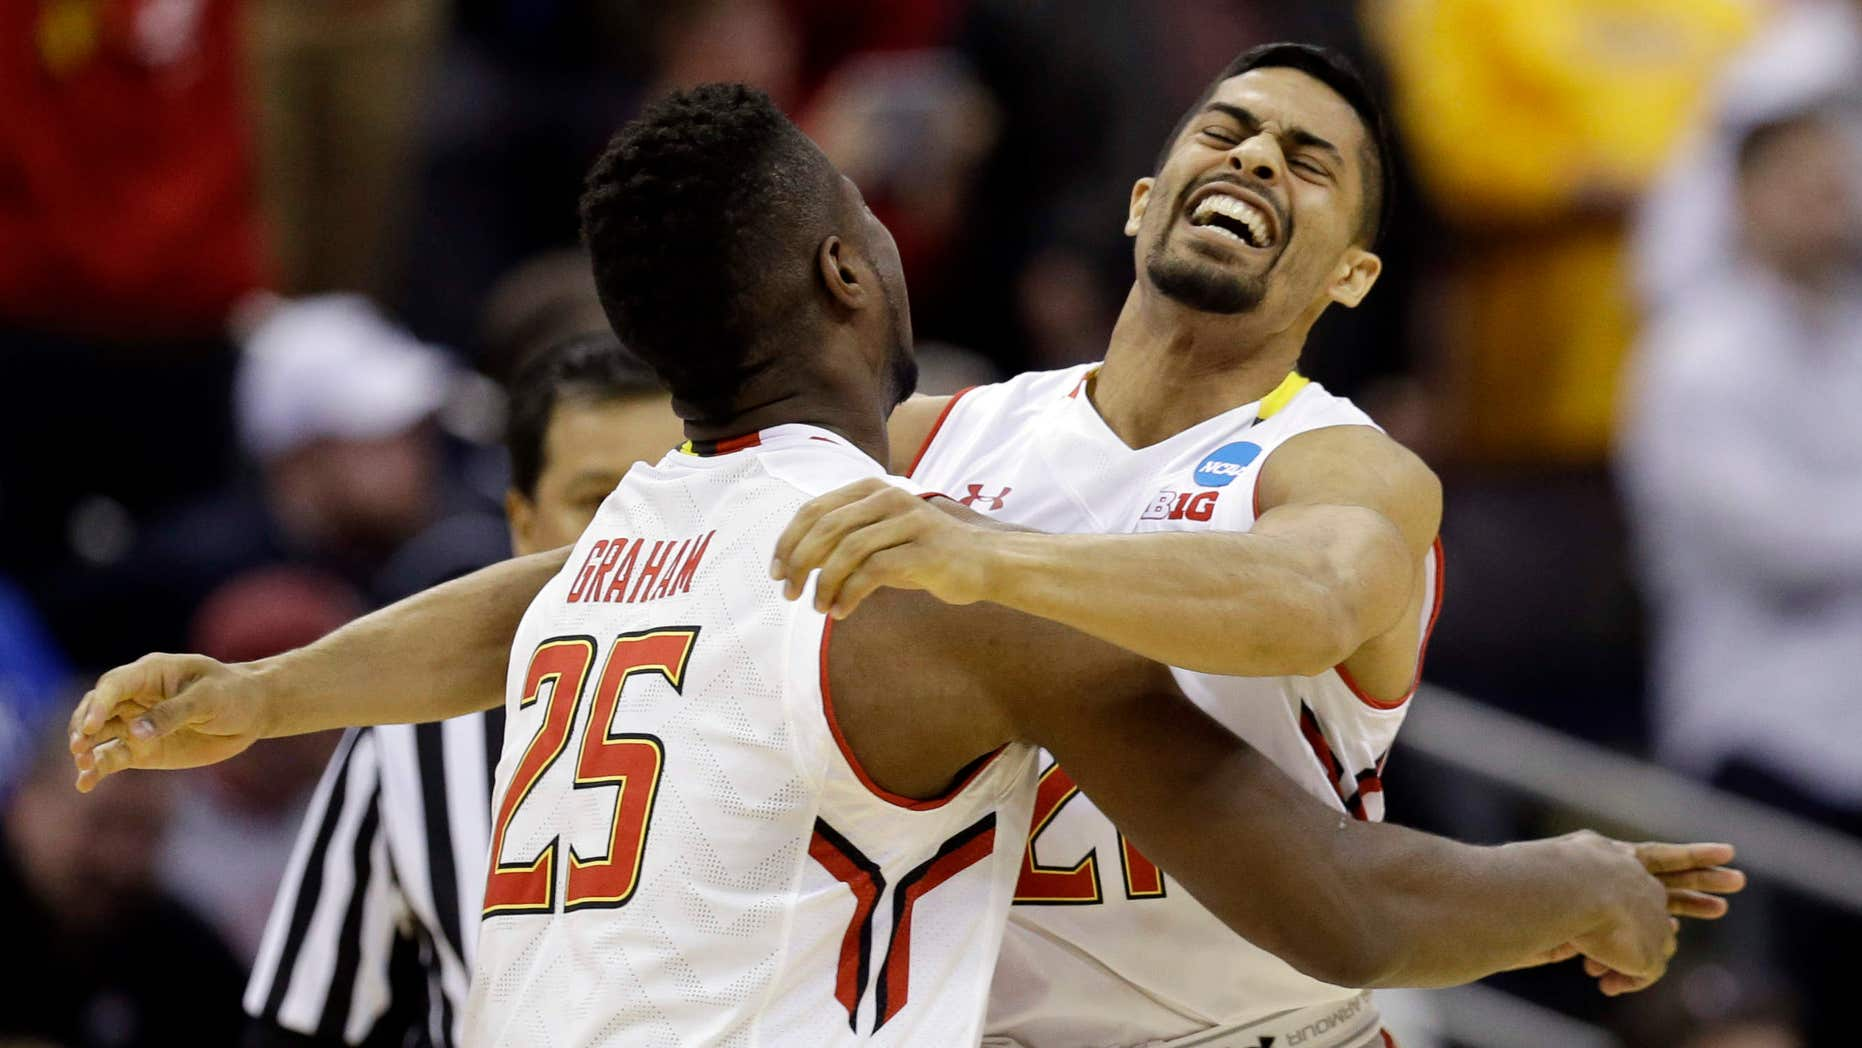 March 20, 2015: Maryland's Jonathan Graham (25) and Varun Ram celebrate after a 65-62 win over Valparaiso in an NCAA tournament college basketball game in the Round of 64 in Columbus, Ohio.